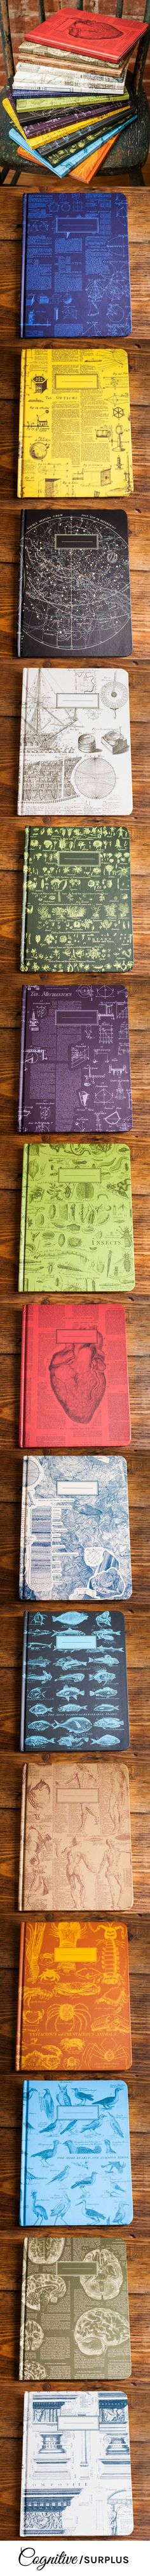 The pages are college ruled on one side and graph paper on the back! They make perfect gifts for all your science and math nerd friends. Each notebook tells its own story sporting vintage imagery and text from the first encyclopedia. Combination of two loves, vintagey awesomeness and a beautiful notebook: